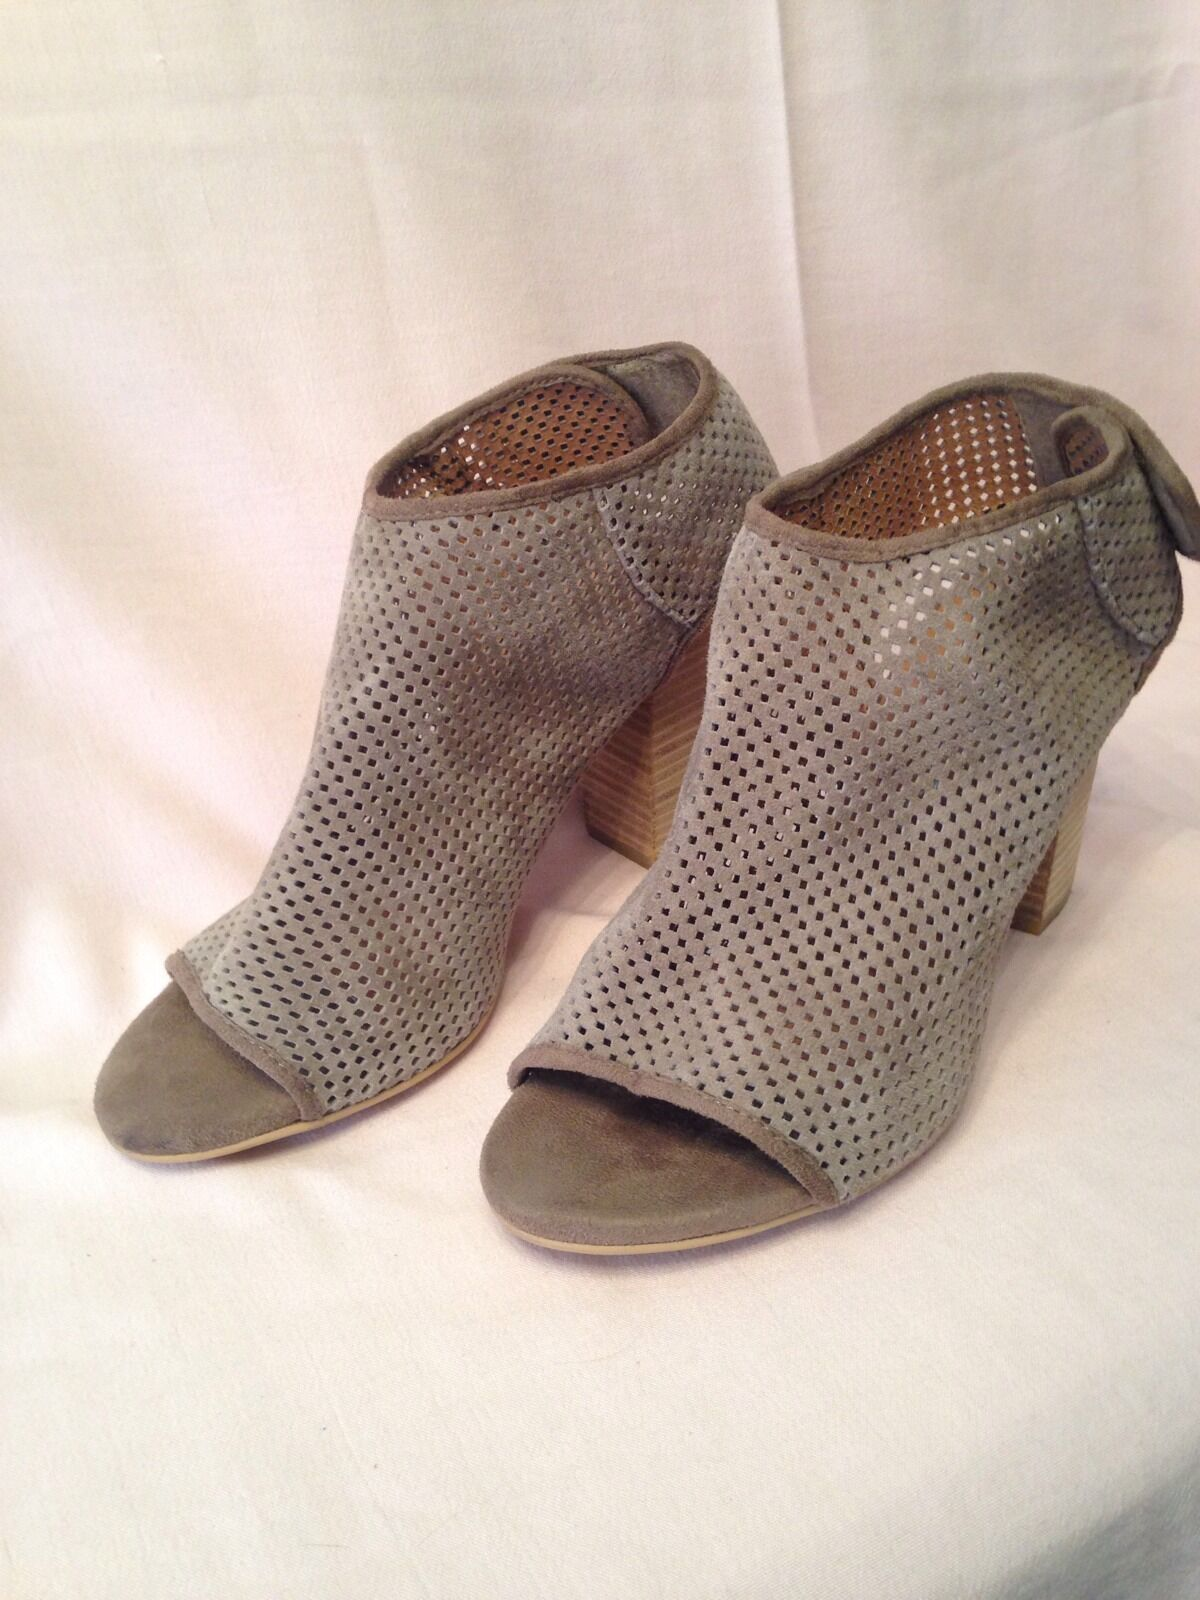 Jeffrey Campbell Open Toe shoes Bootie Size 10